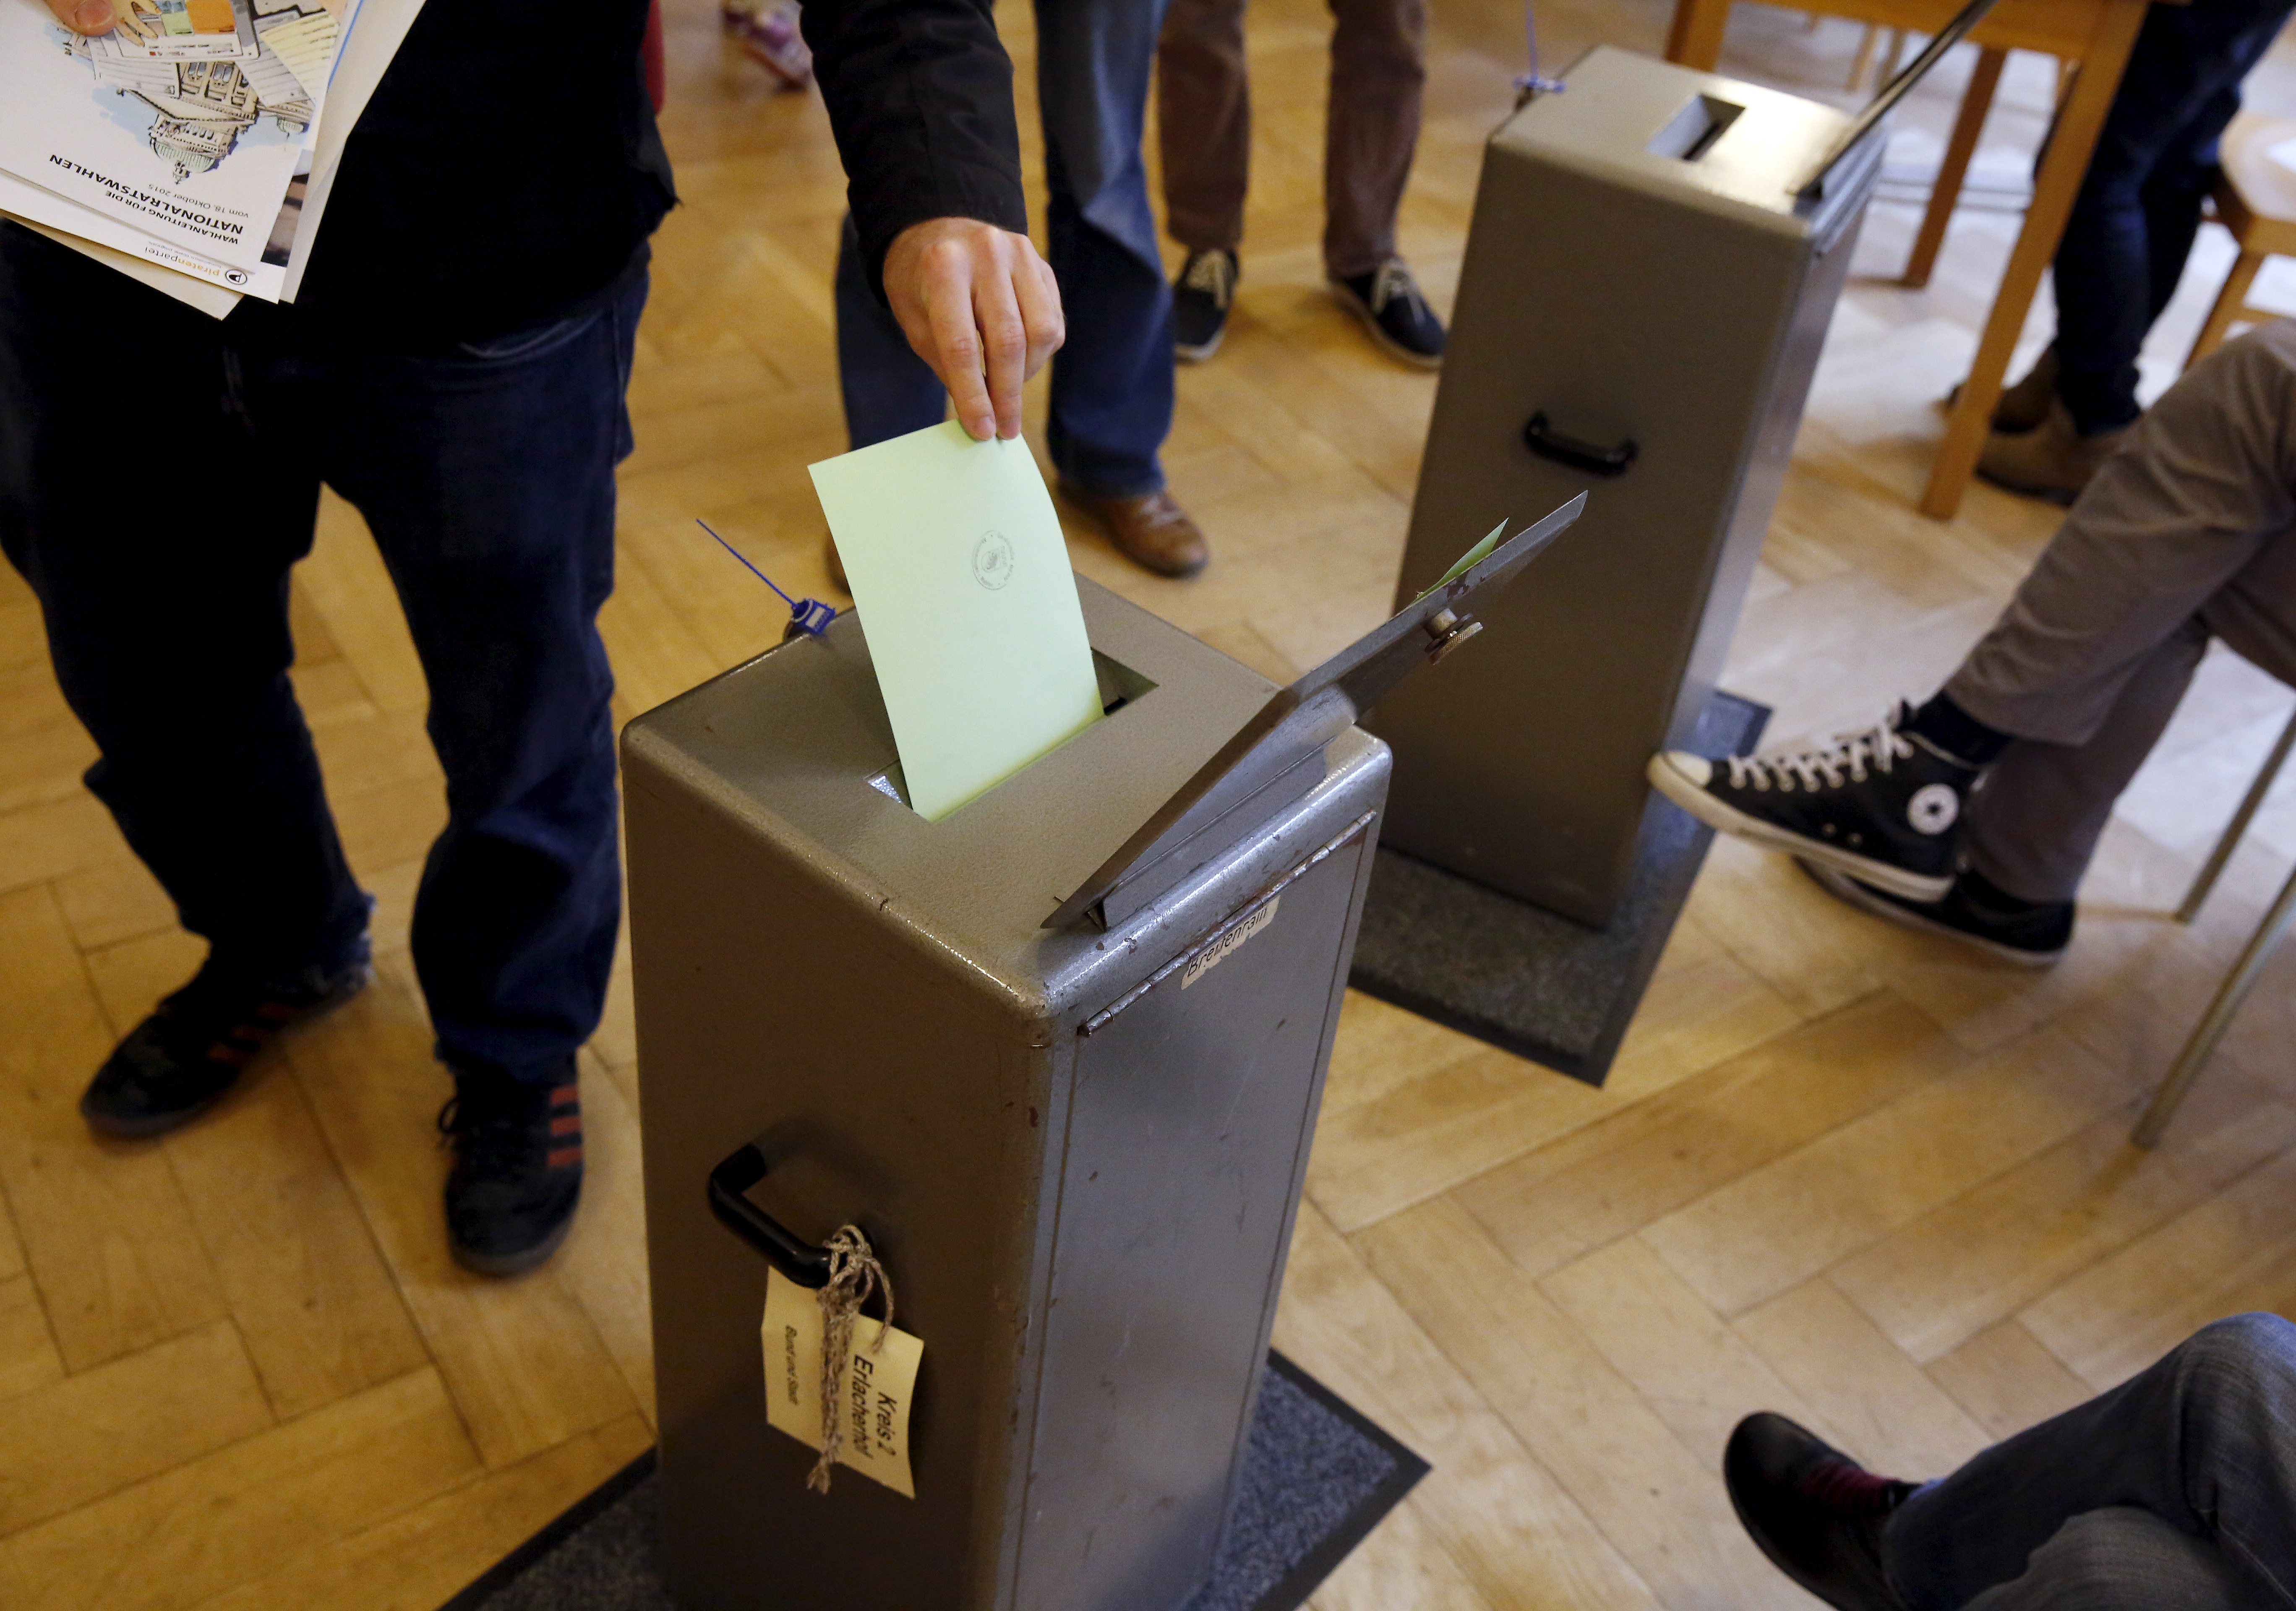 People cast their vote in a school house in Bern, Switzerland, October 18, 2015.